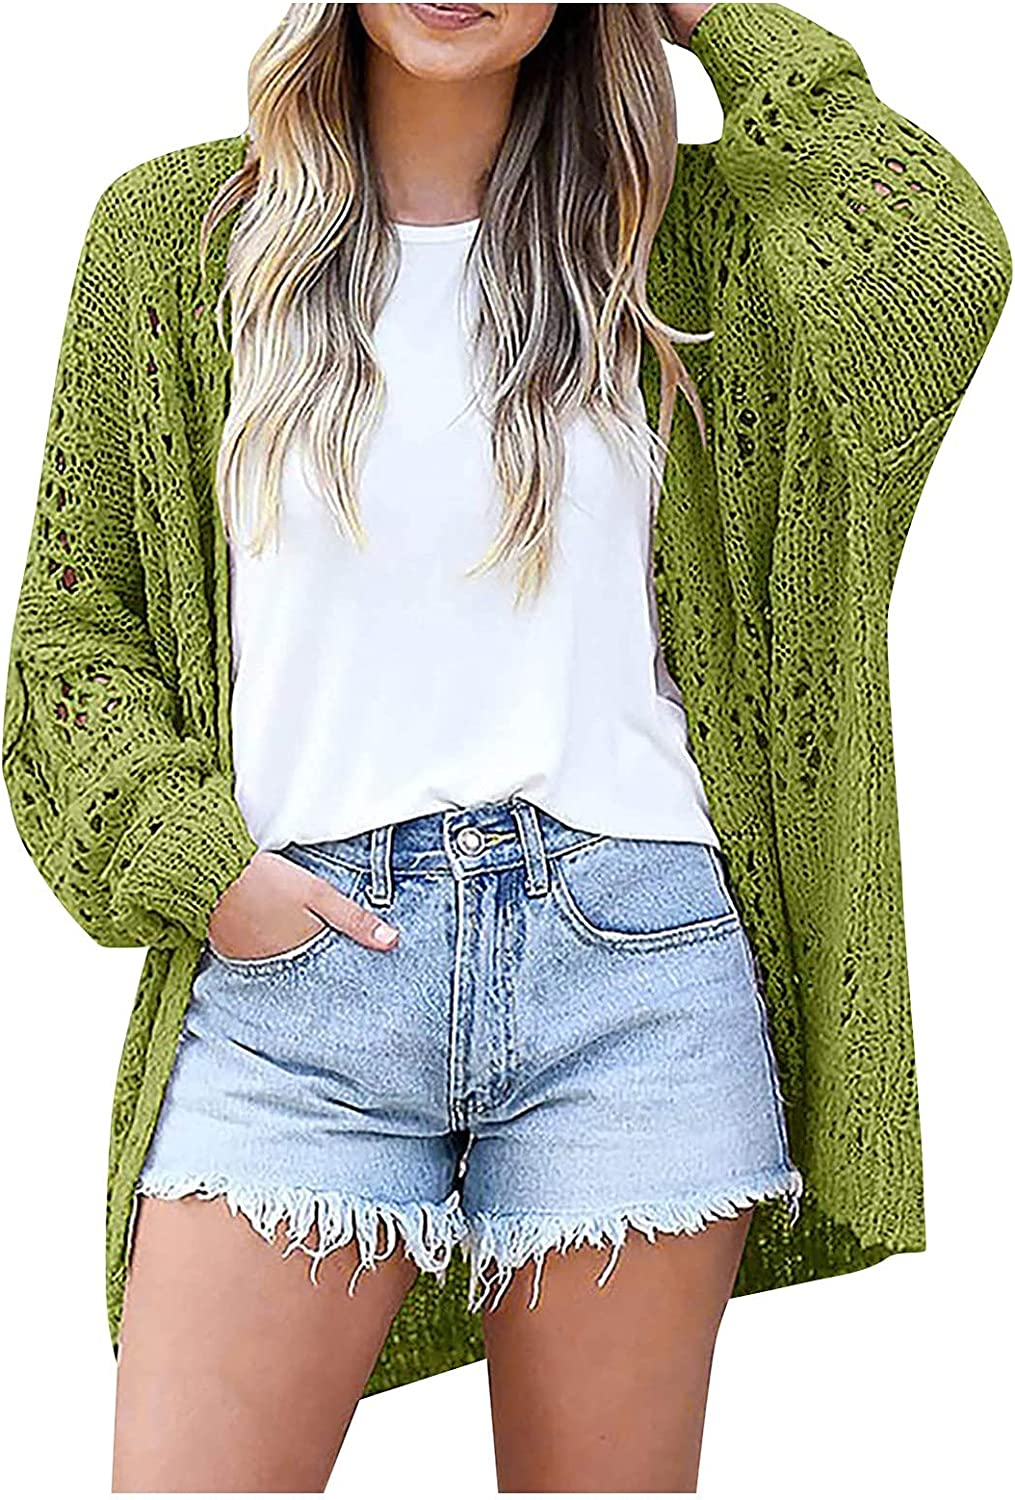 VonVonCo Cardigan Sweaters for Women Slim Fit Hollow Top Ladies V-Neck Pleated Long Sleeve Bottomed Sweater